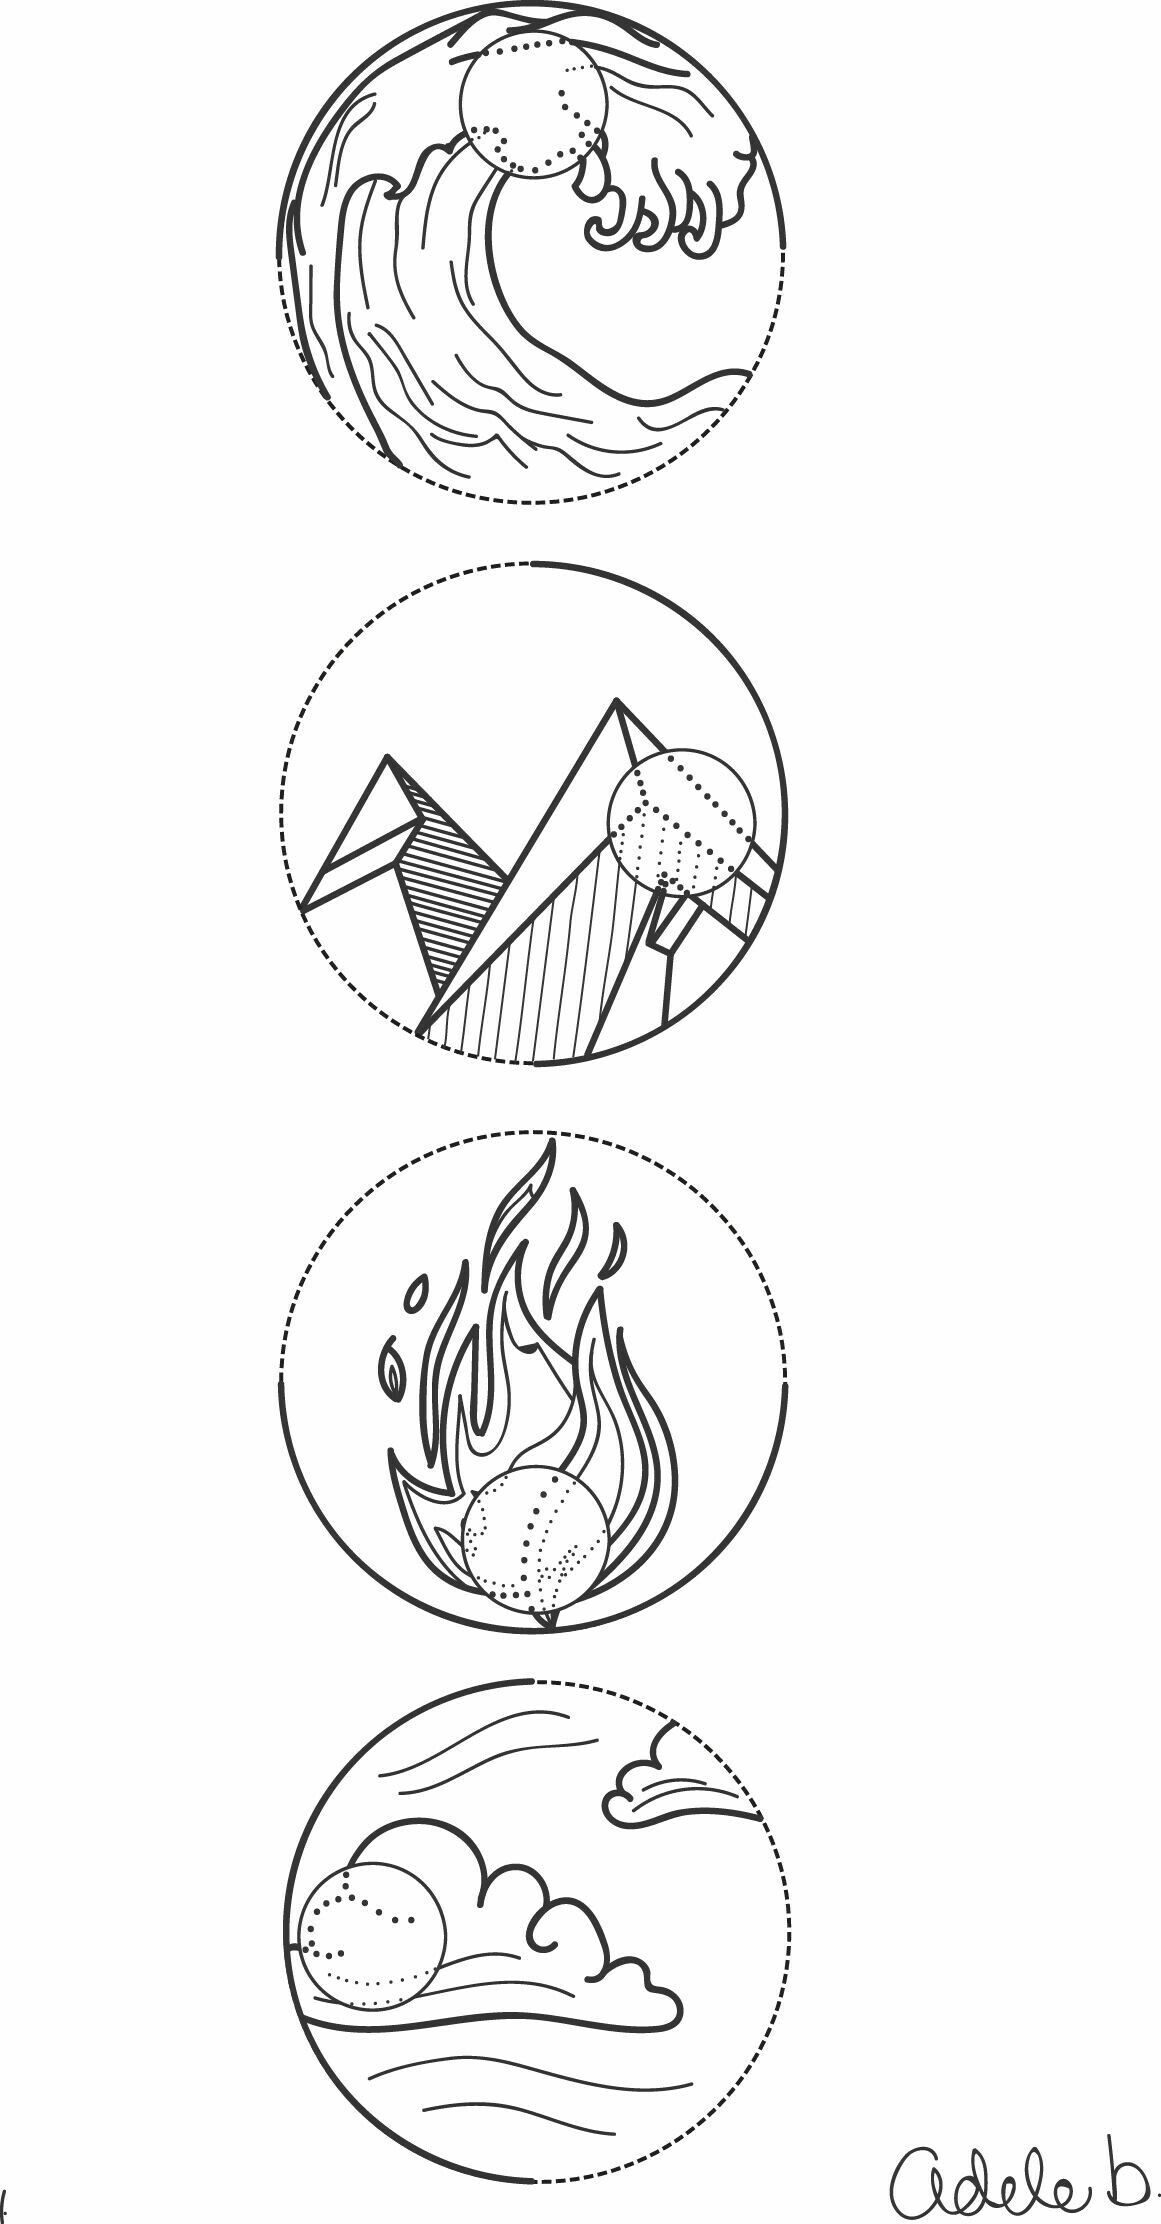 How To Draw Water Tribe Symbol